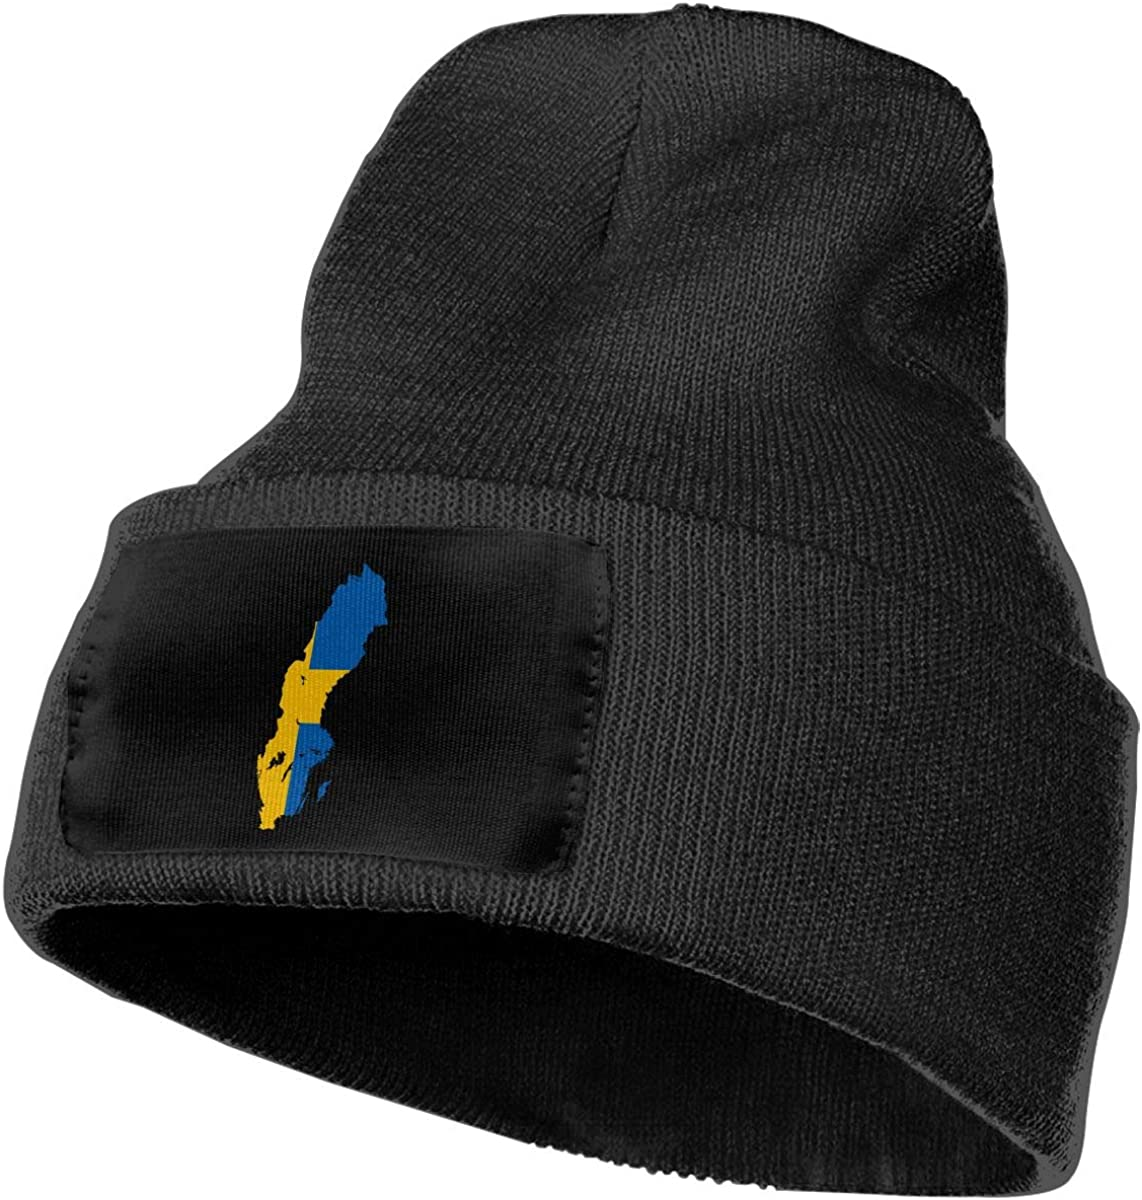 SLADDD1 Sweden Warm Winter Hat Knit Beanie Skull Cap Cuff Beanie Hat Winter Hats for Men /& Women